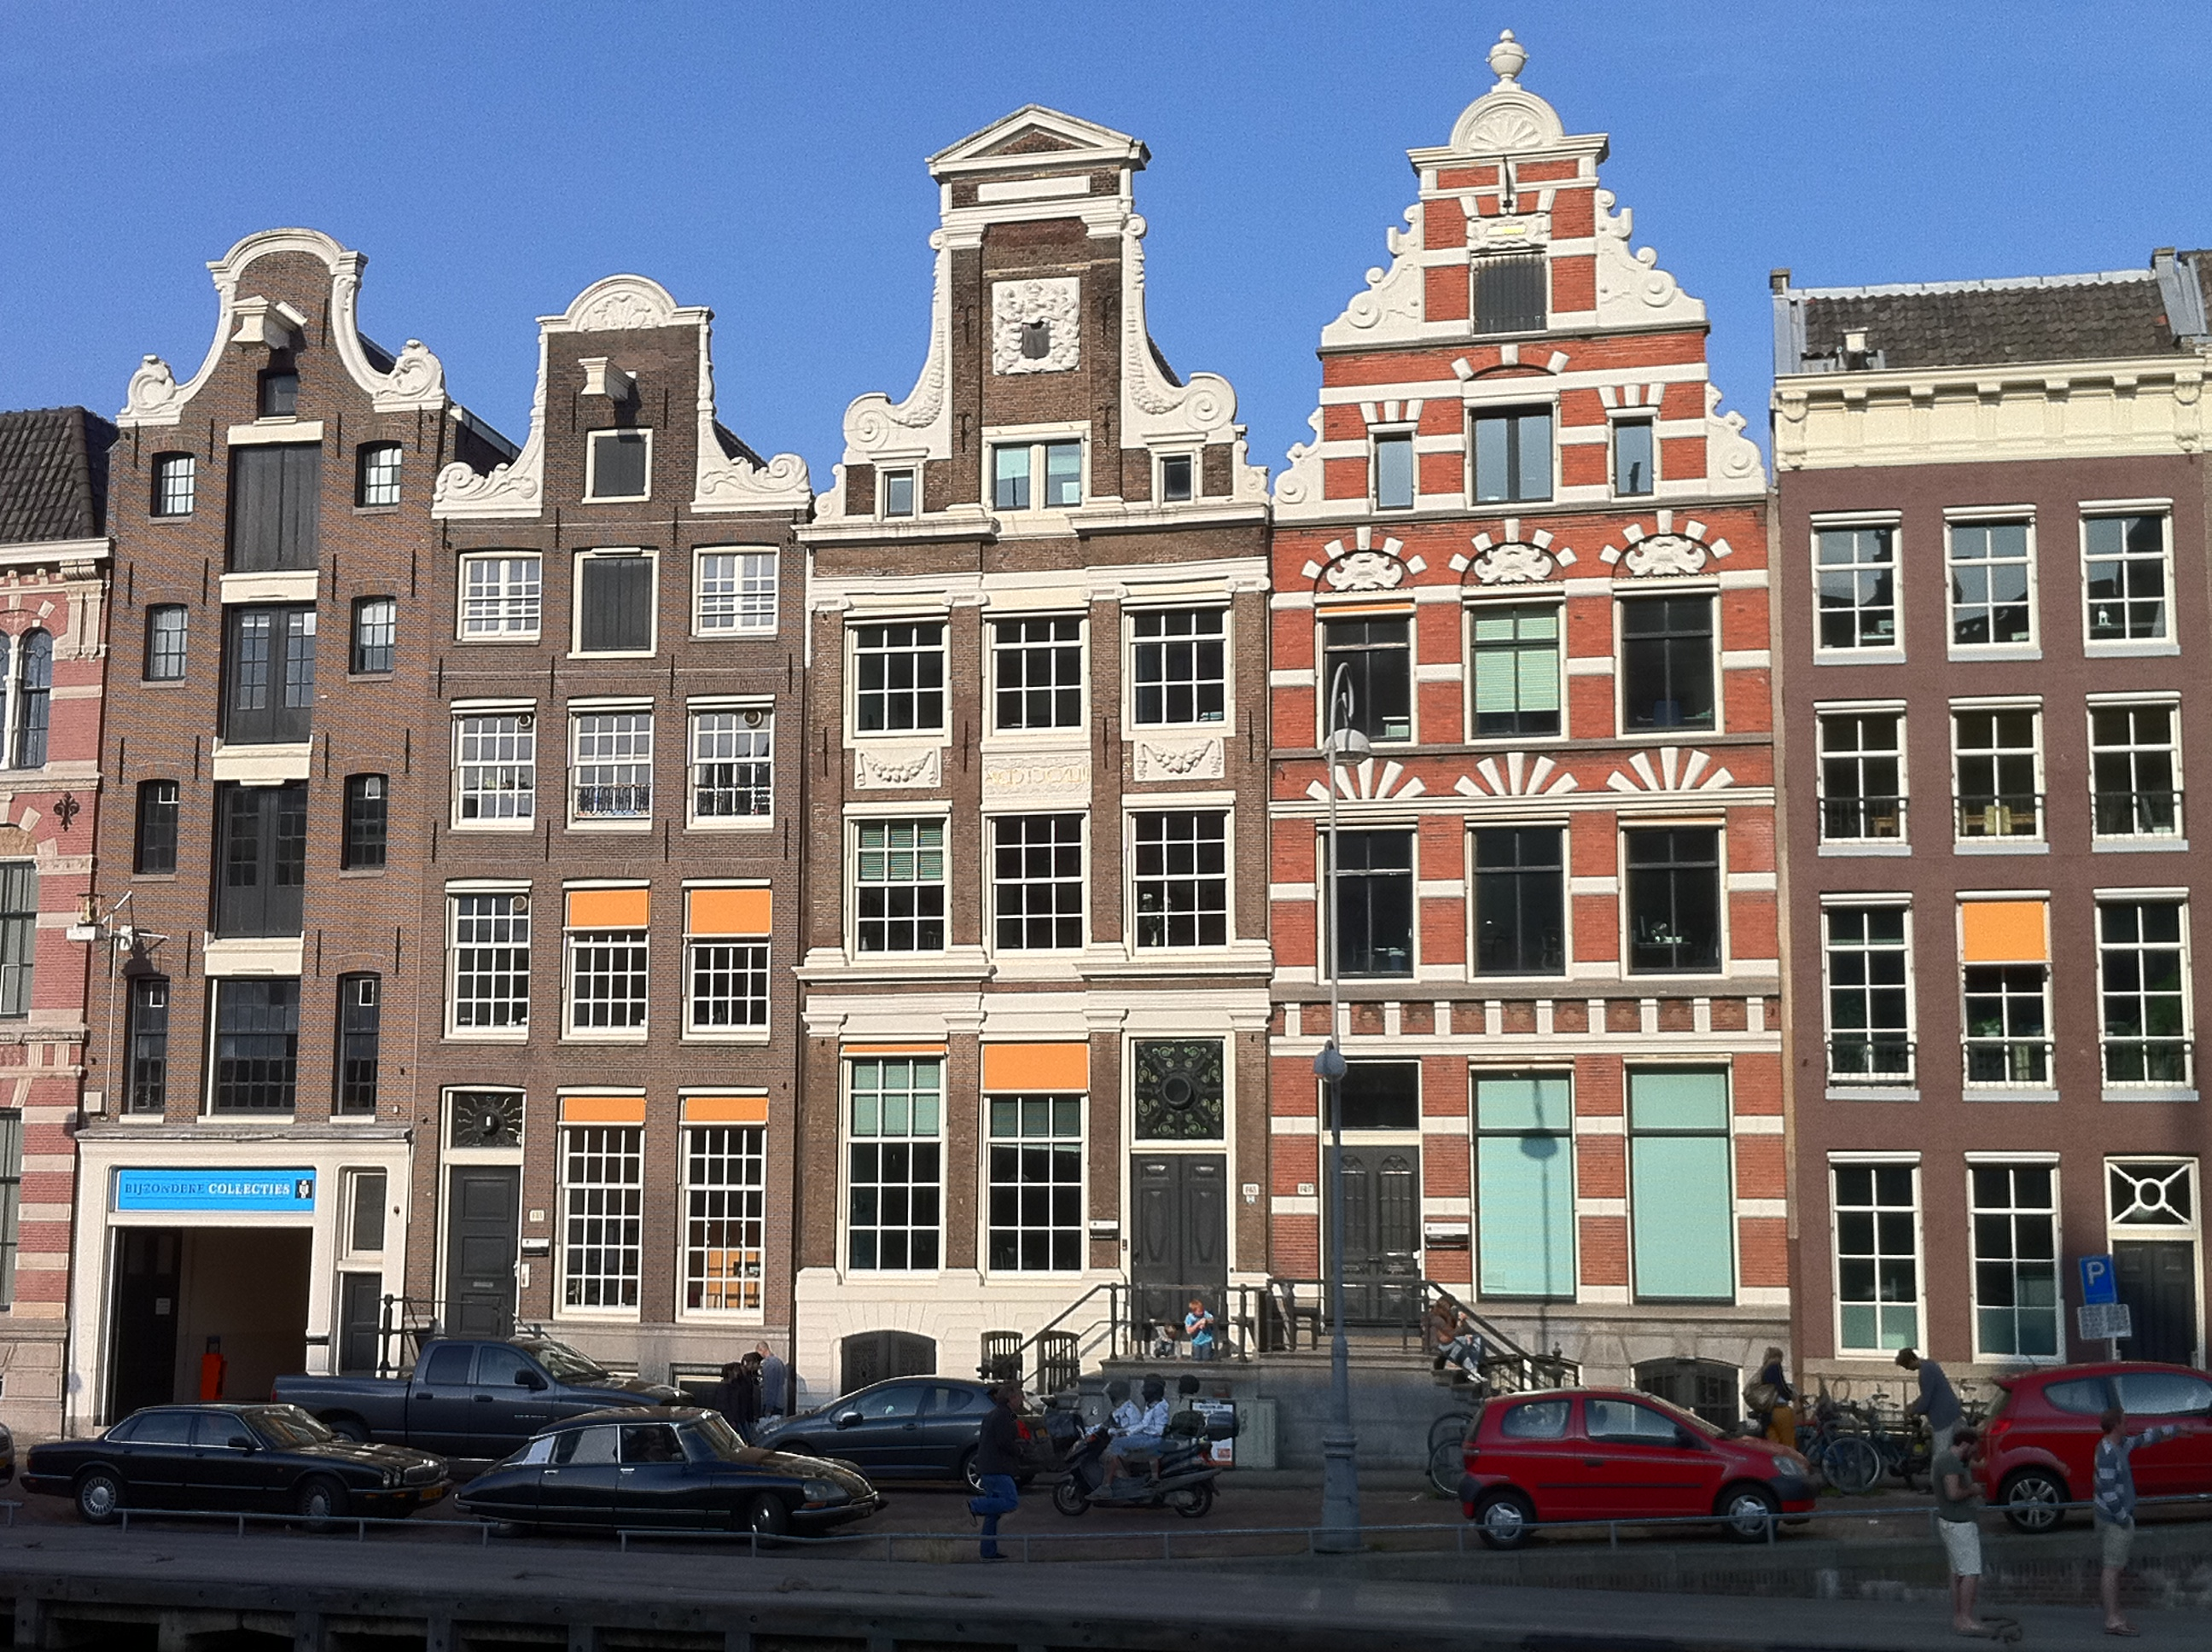 Pand met pilaster halsgevel in amsterdam monument - Oude huis fotos ...